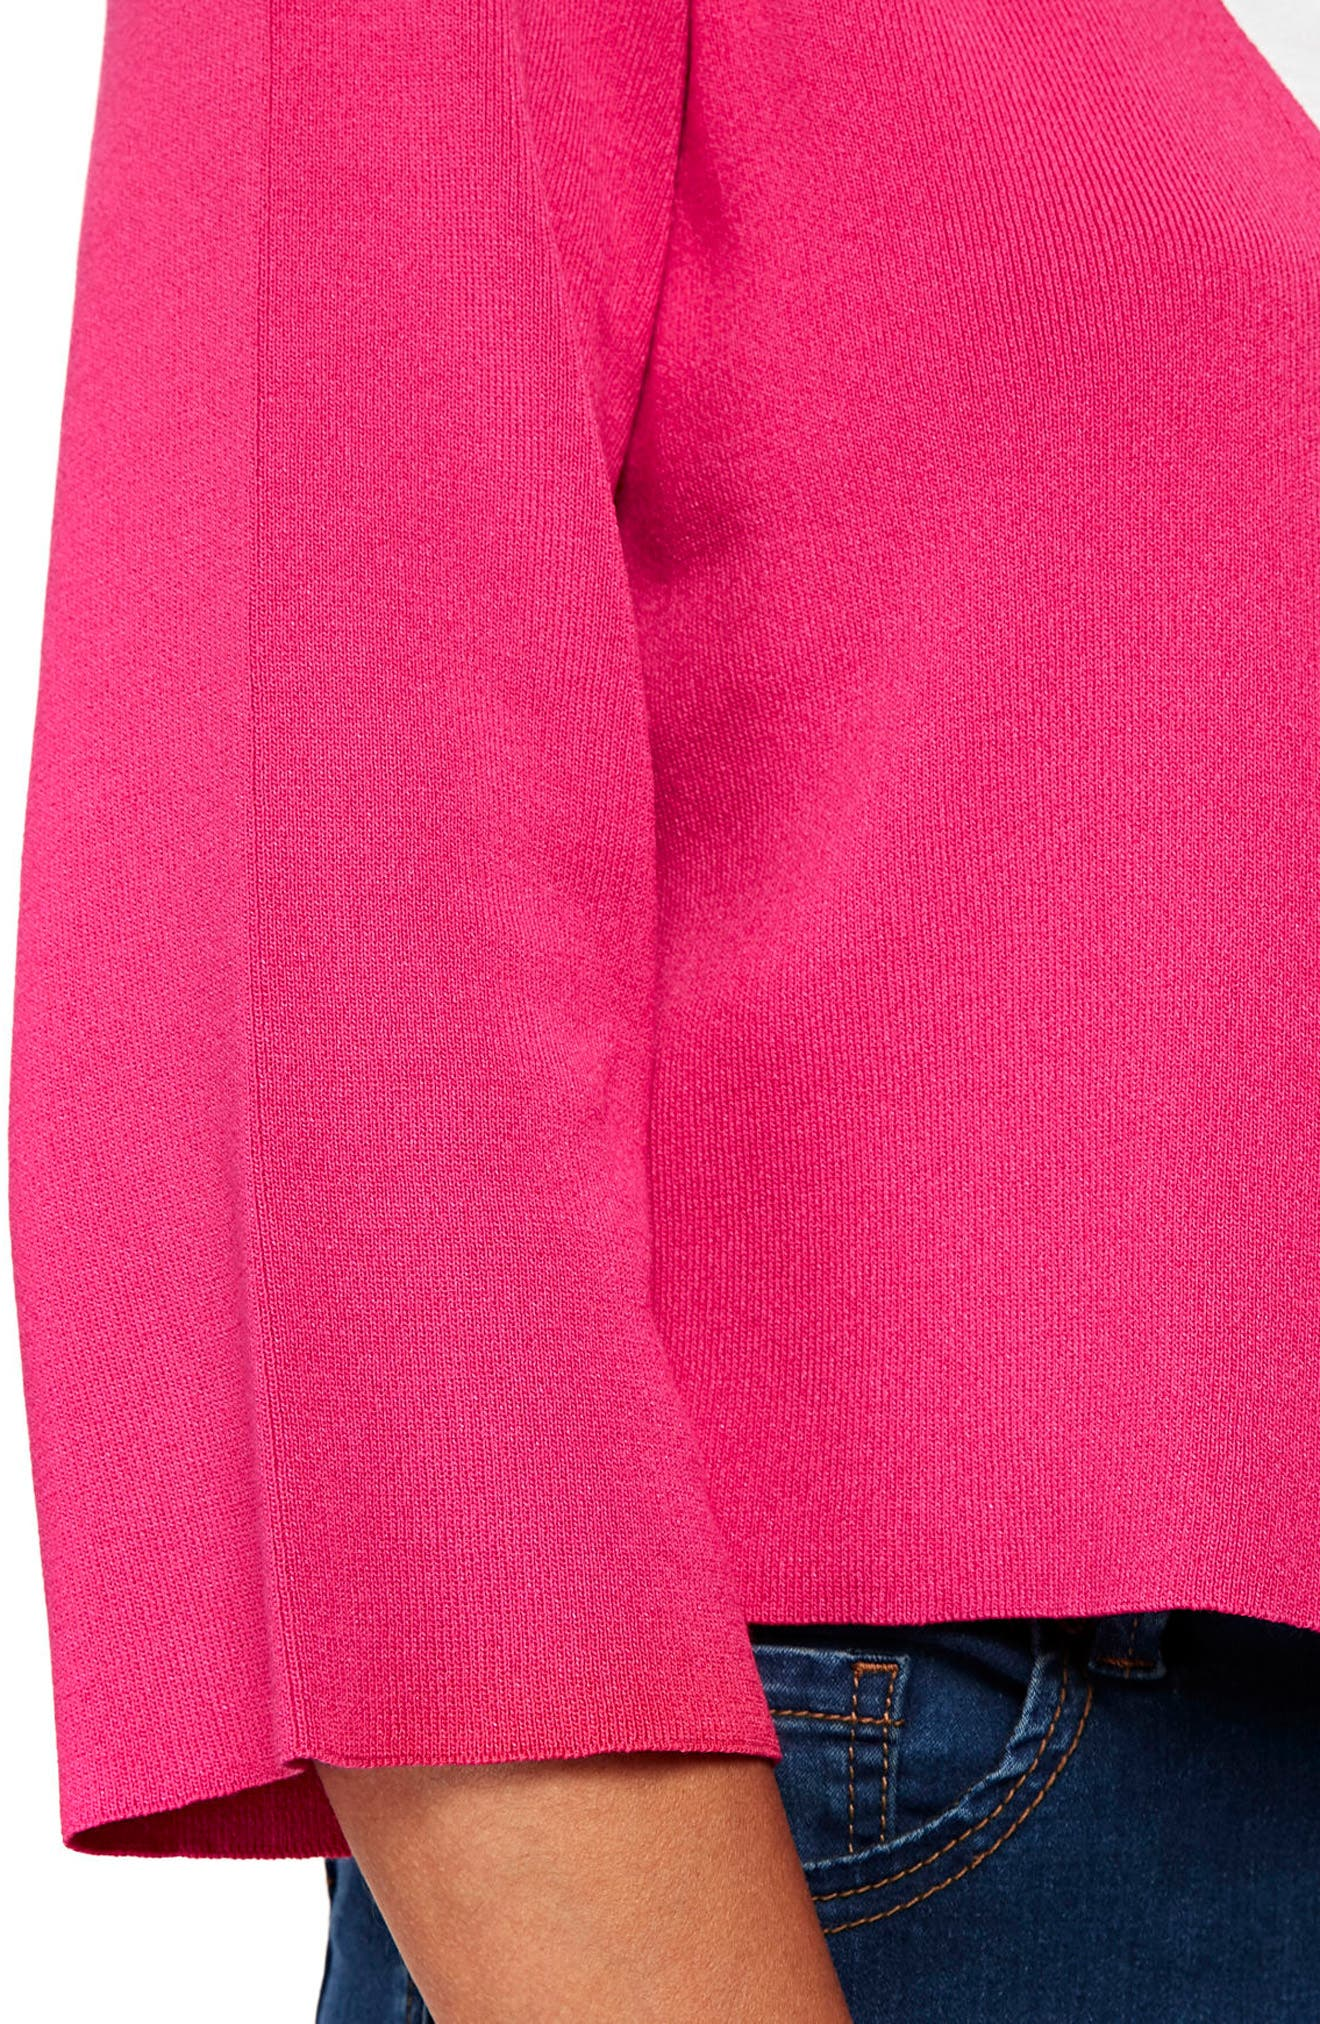 Wide Sleeve Shrug Sweater,                             Alternate thumbnail 2, color,                             Pink